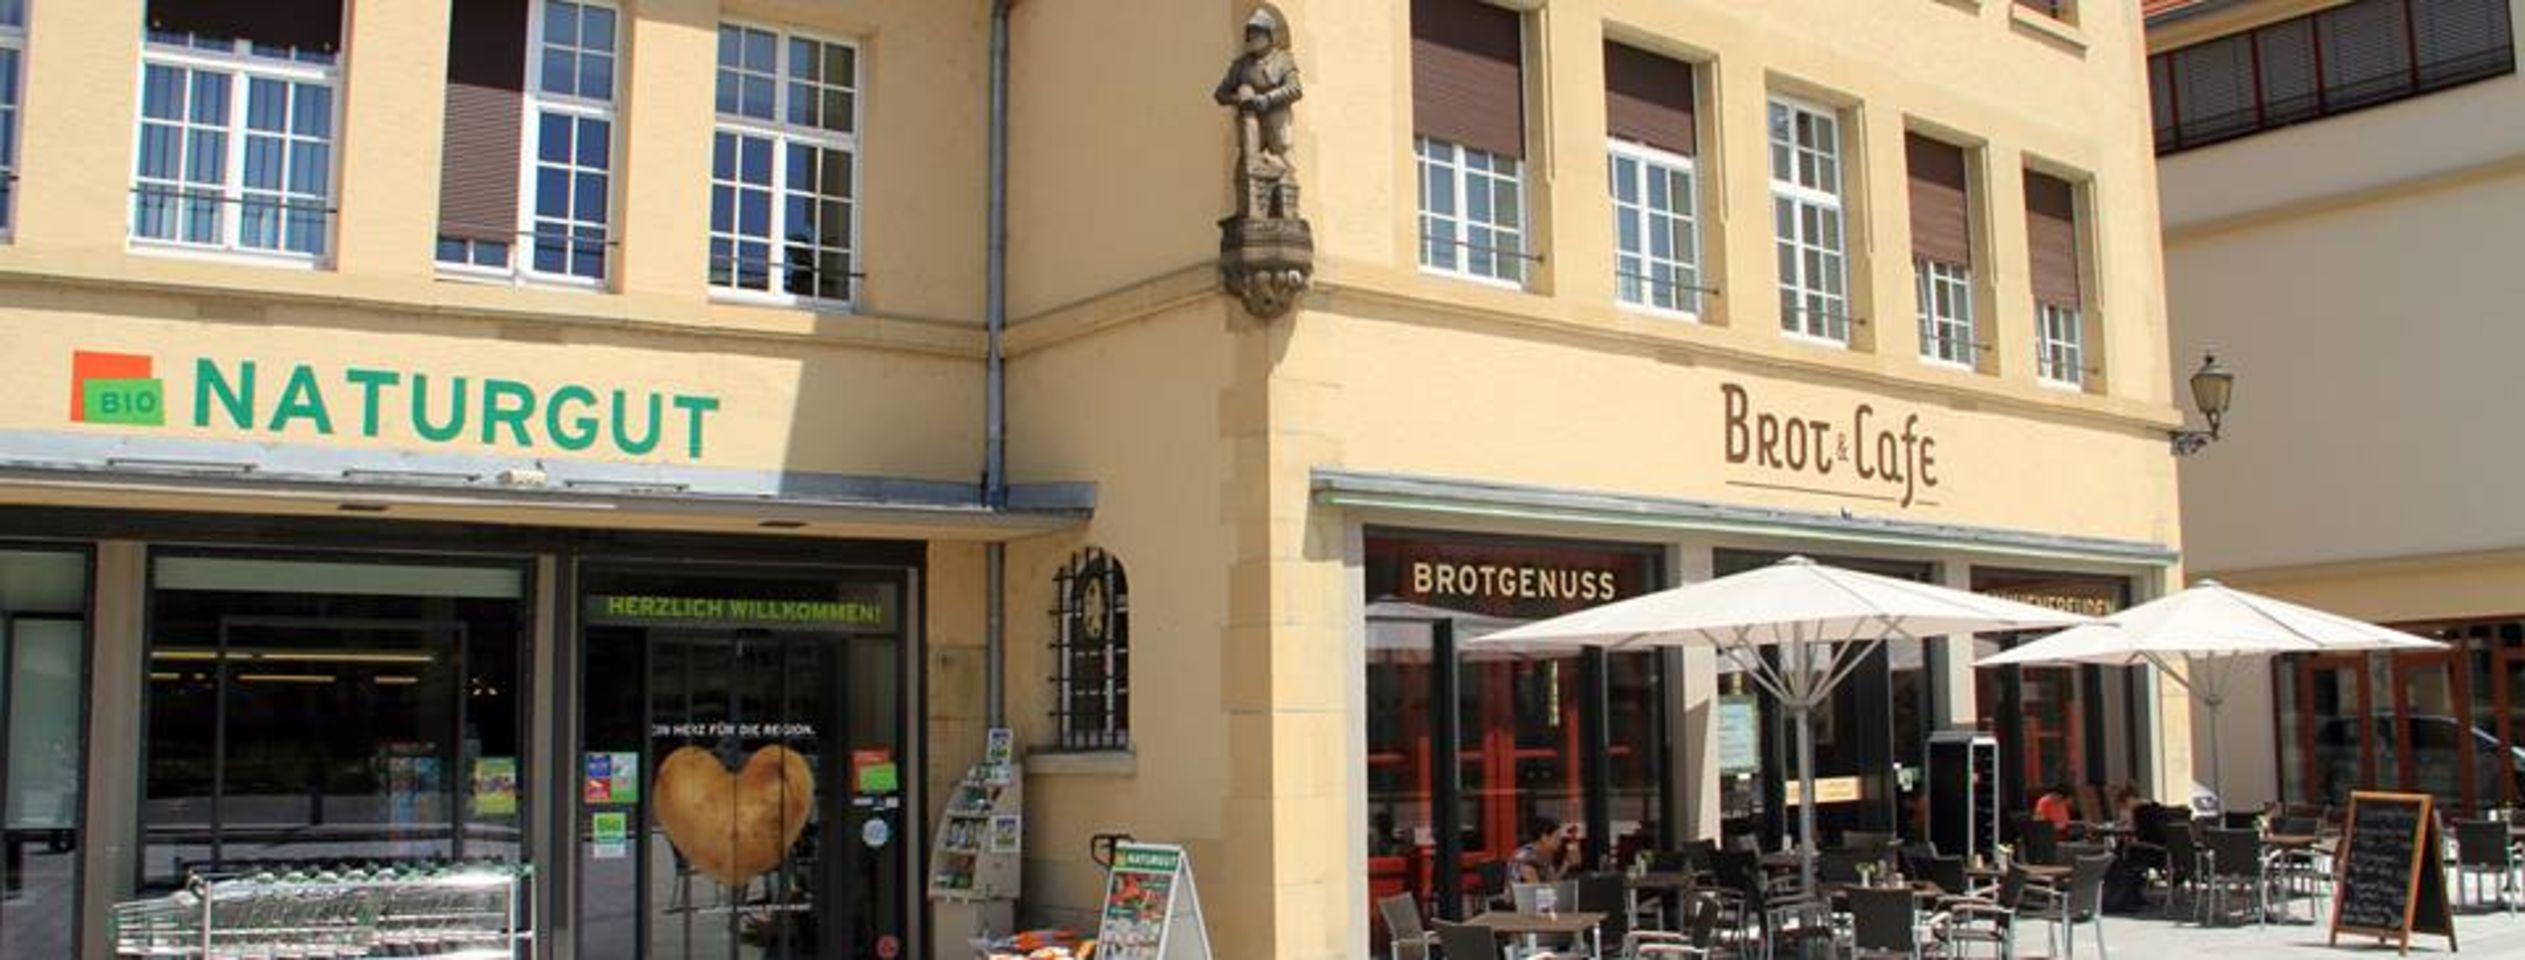 A photo of Brot & Café